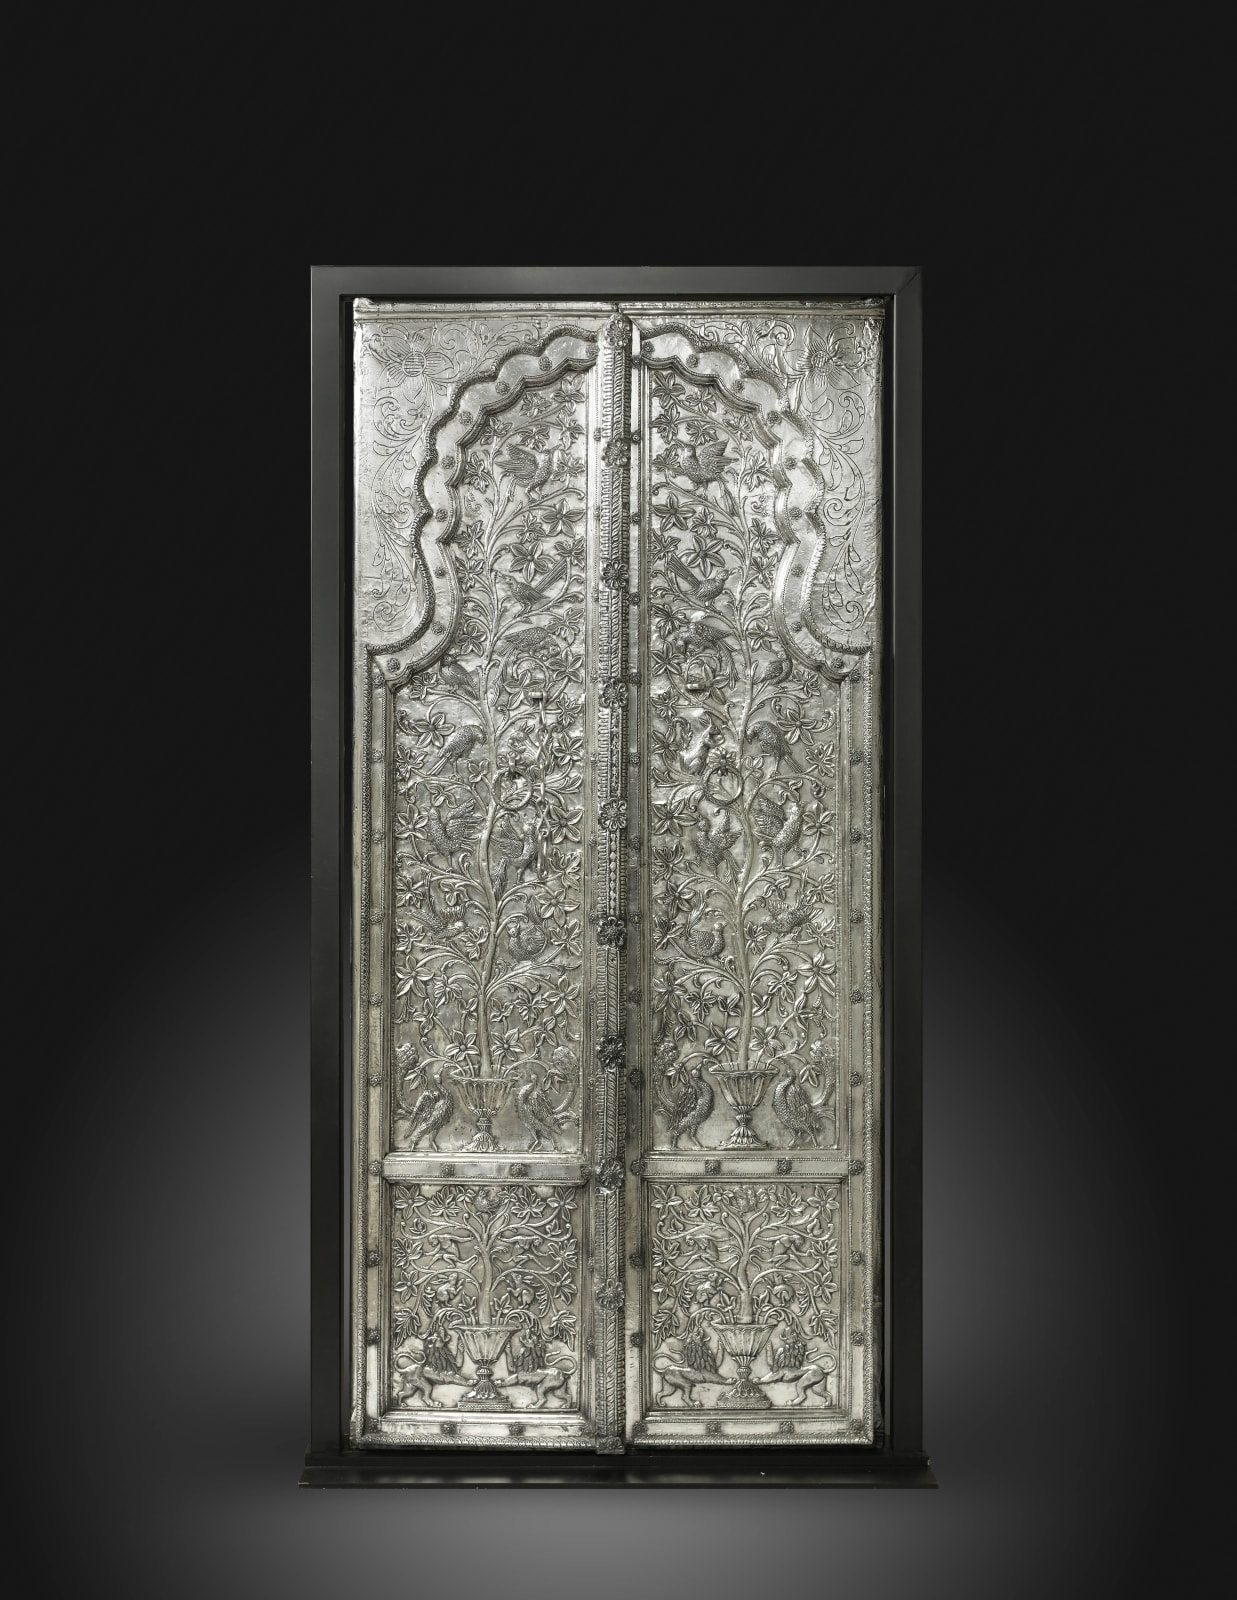 A pair of Royal silver-plated doors Commissioned for the Juna Mahal Palace, Dungarpur, Rajasthan, India